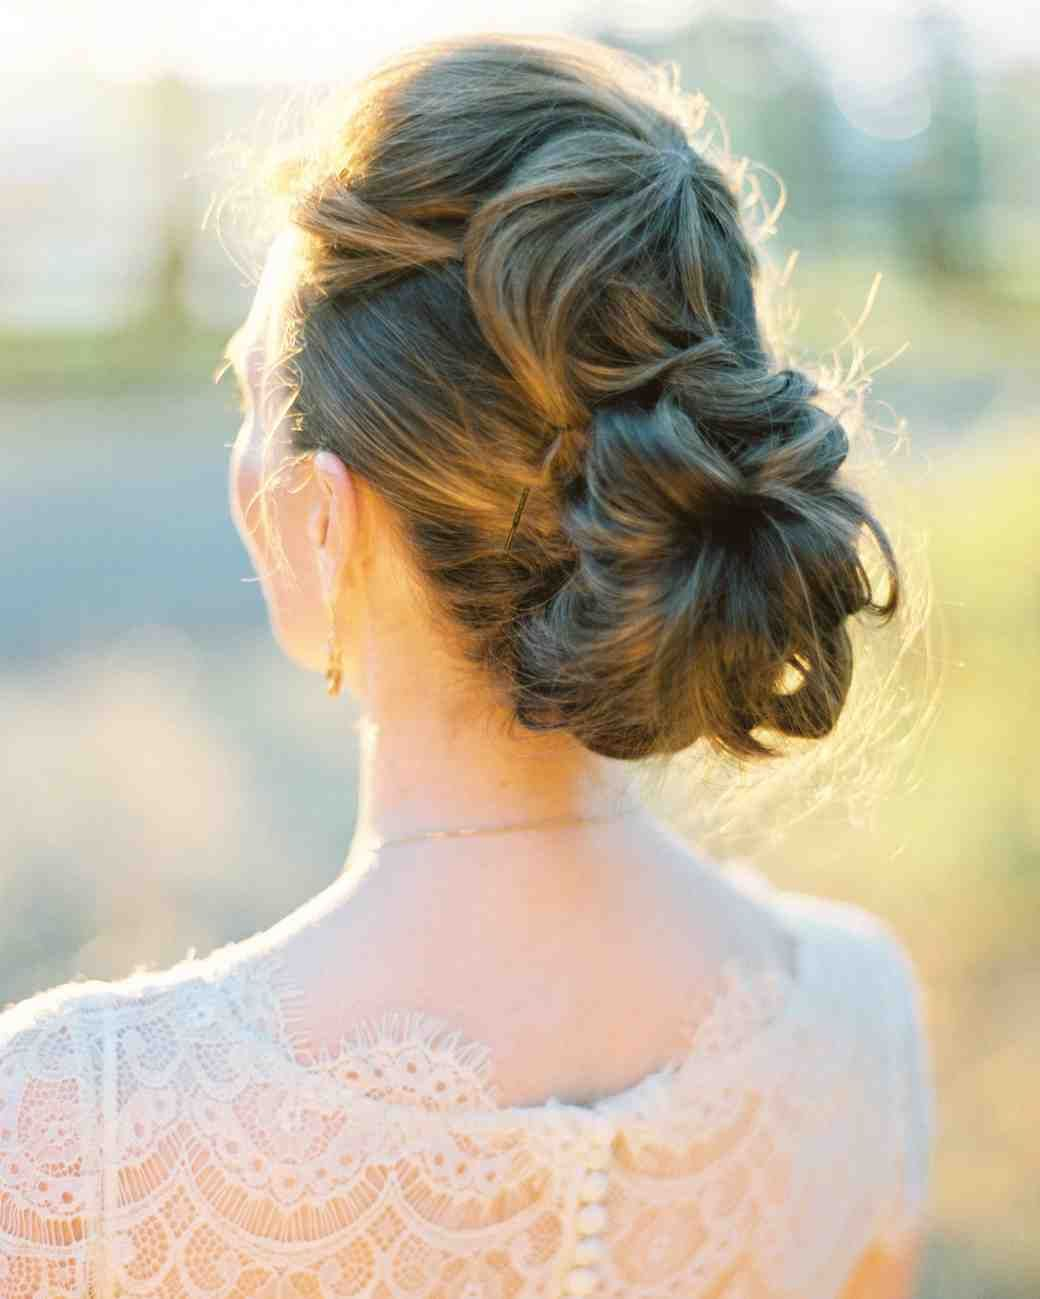 25 Simple Wedding Updos Hairstyle That Will Make You So